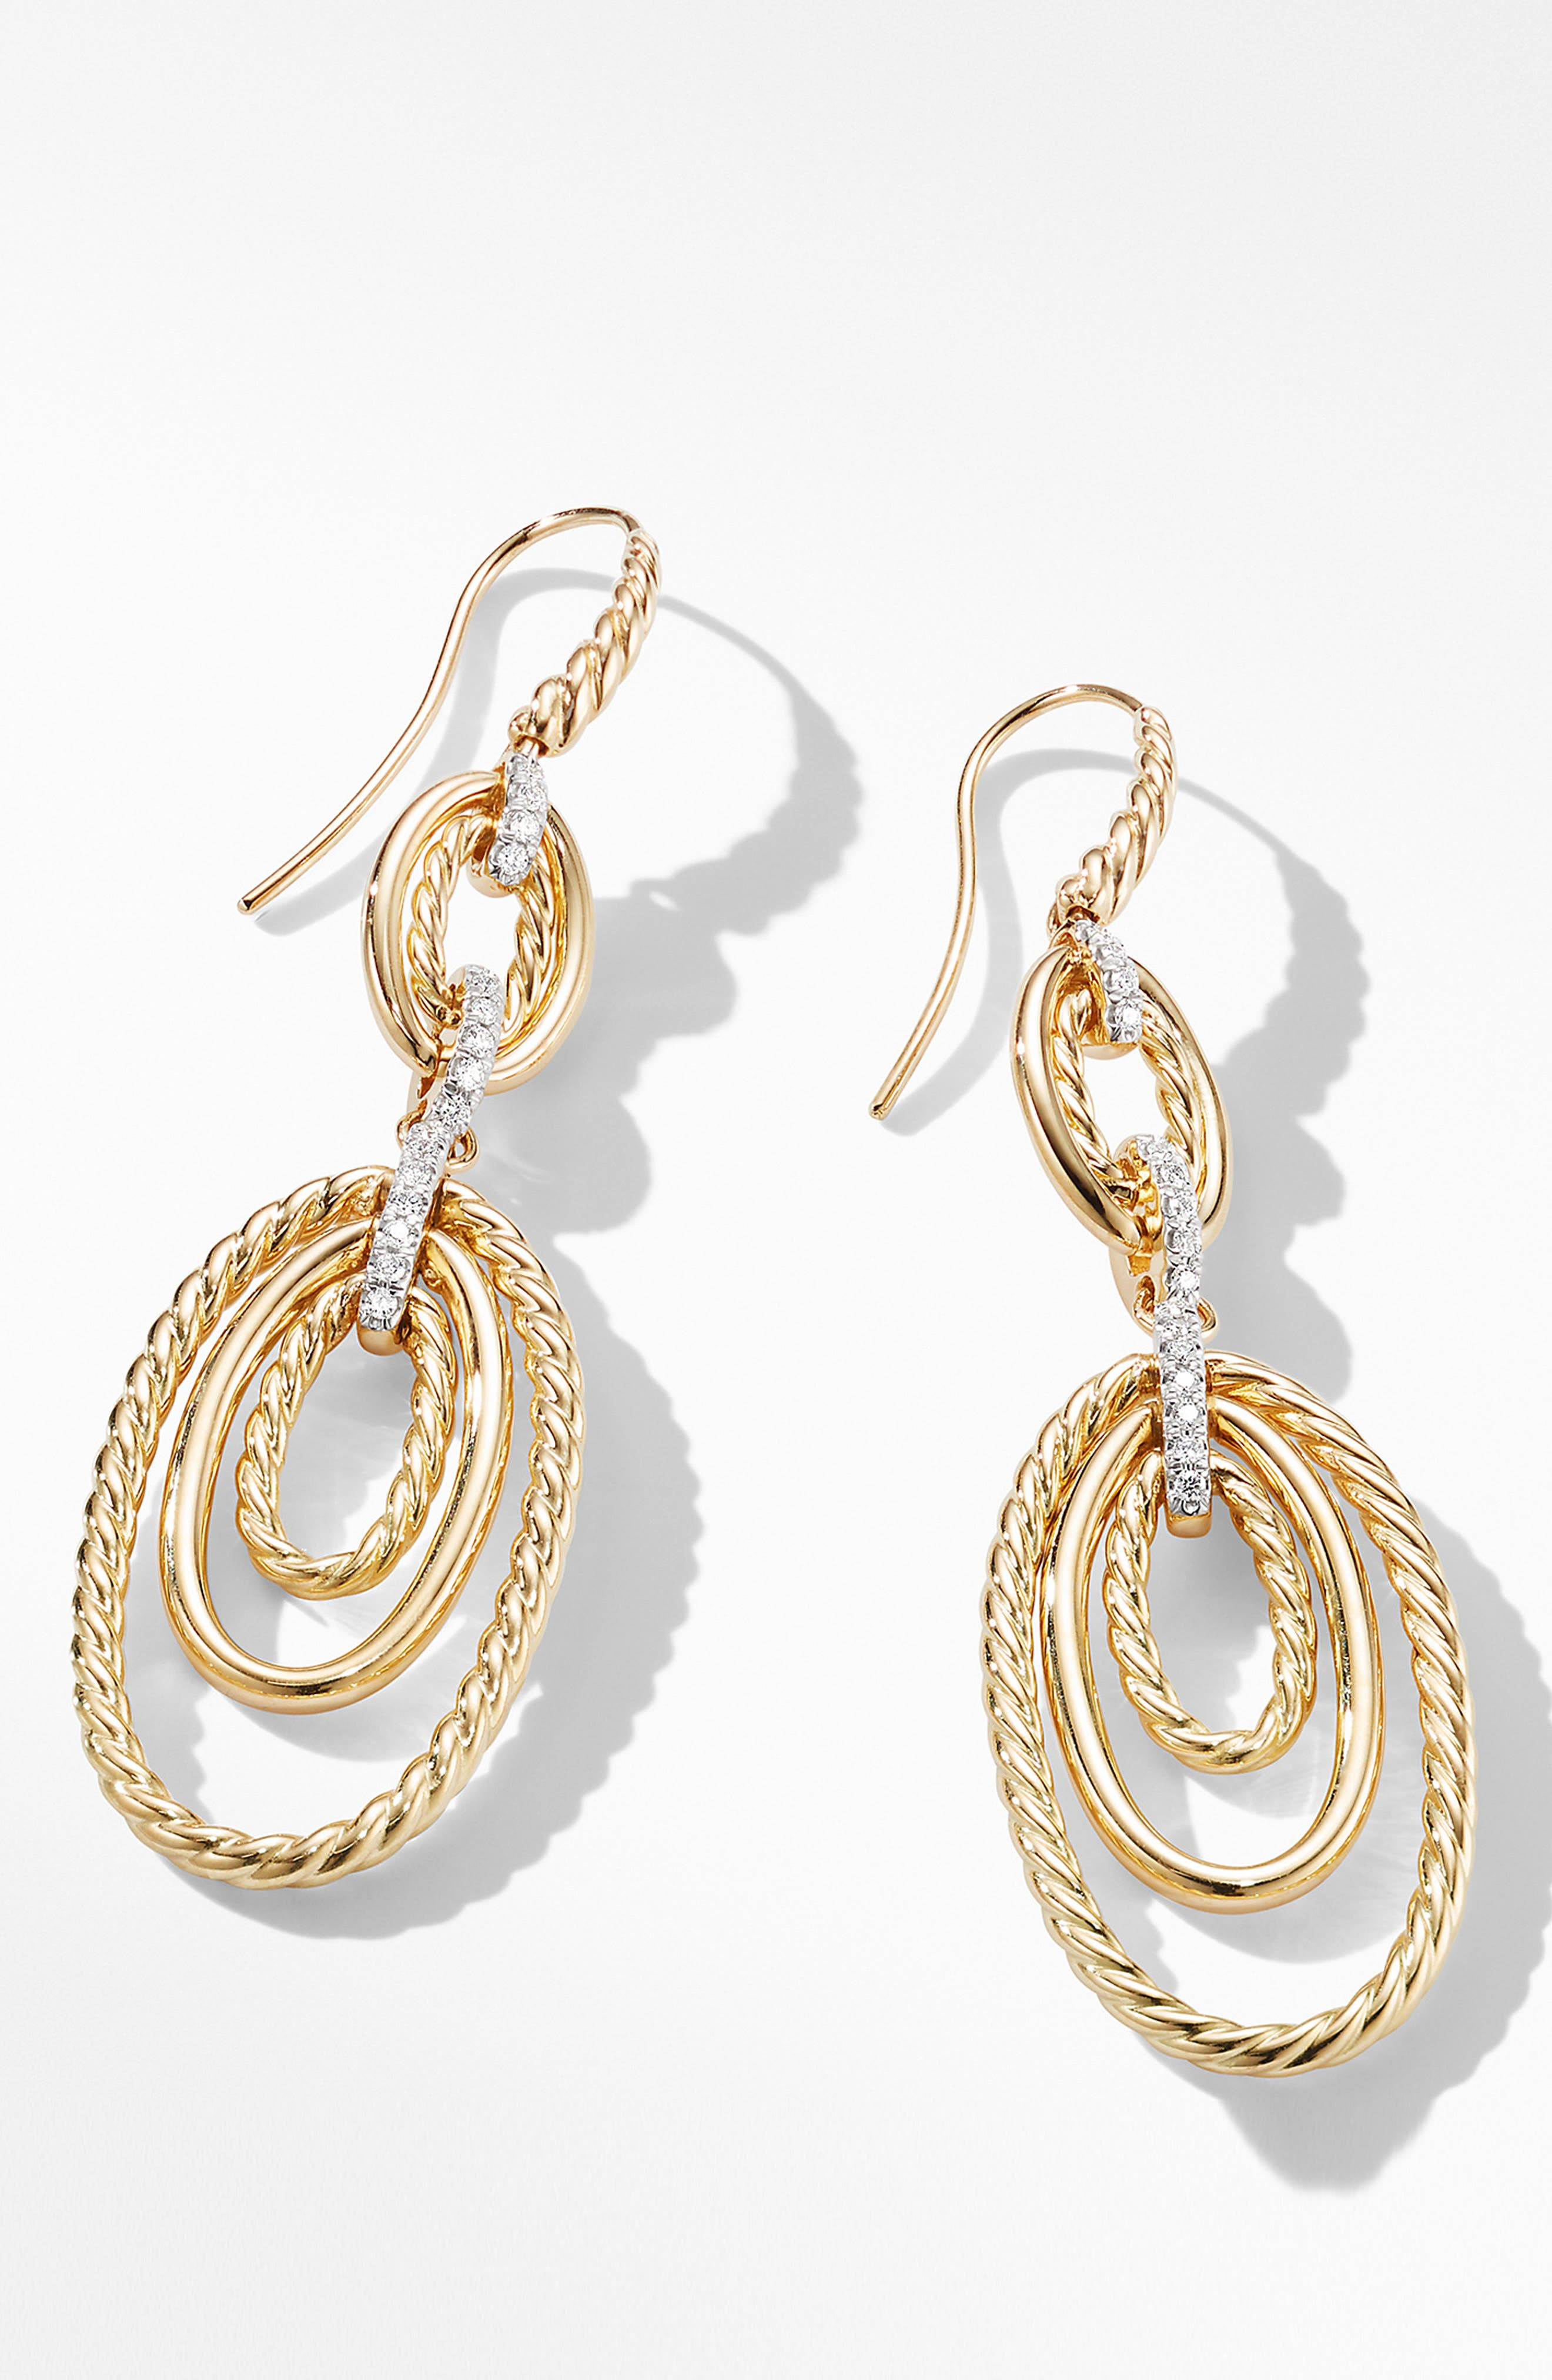 Continuance Drop Earrings with Diamonds in 18K Yellow Gold,                             Alternate thumbnail 2, color,                             GOLD/ DIAMOND